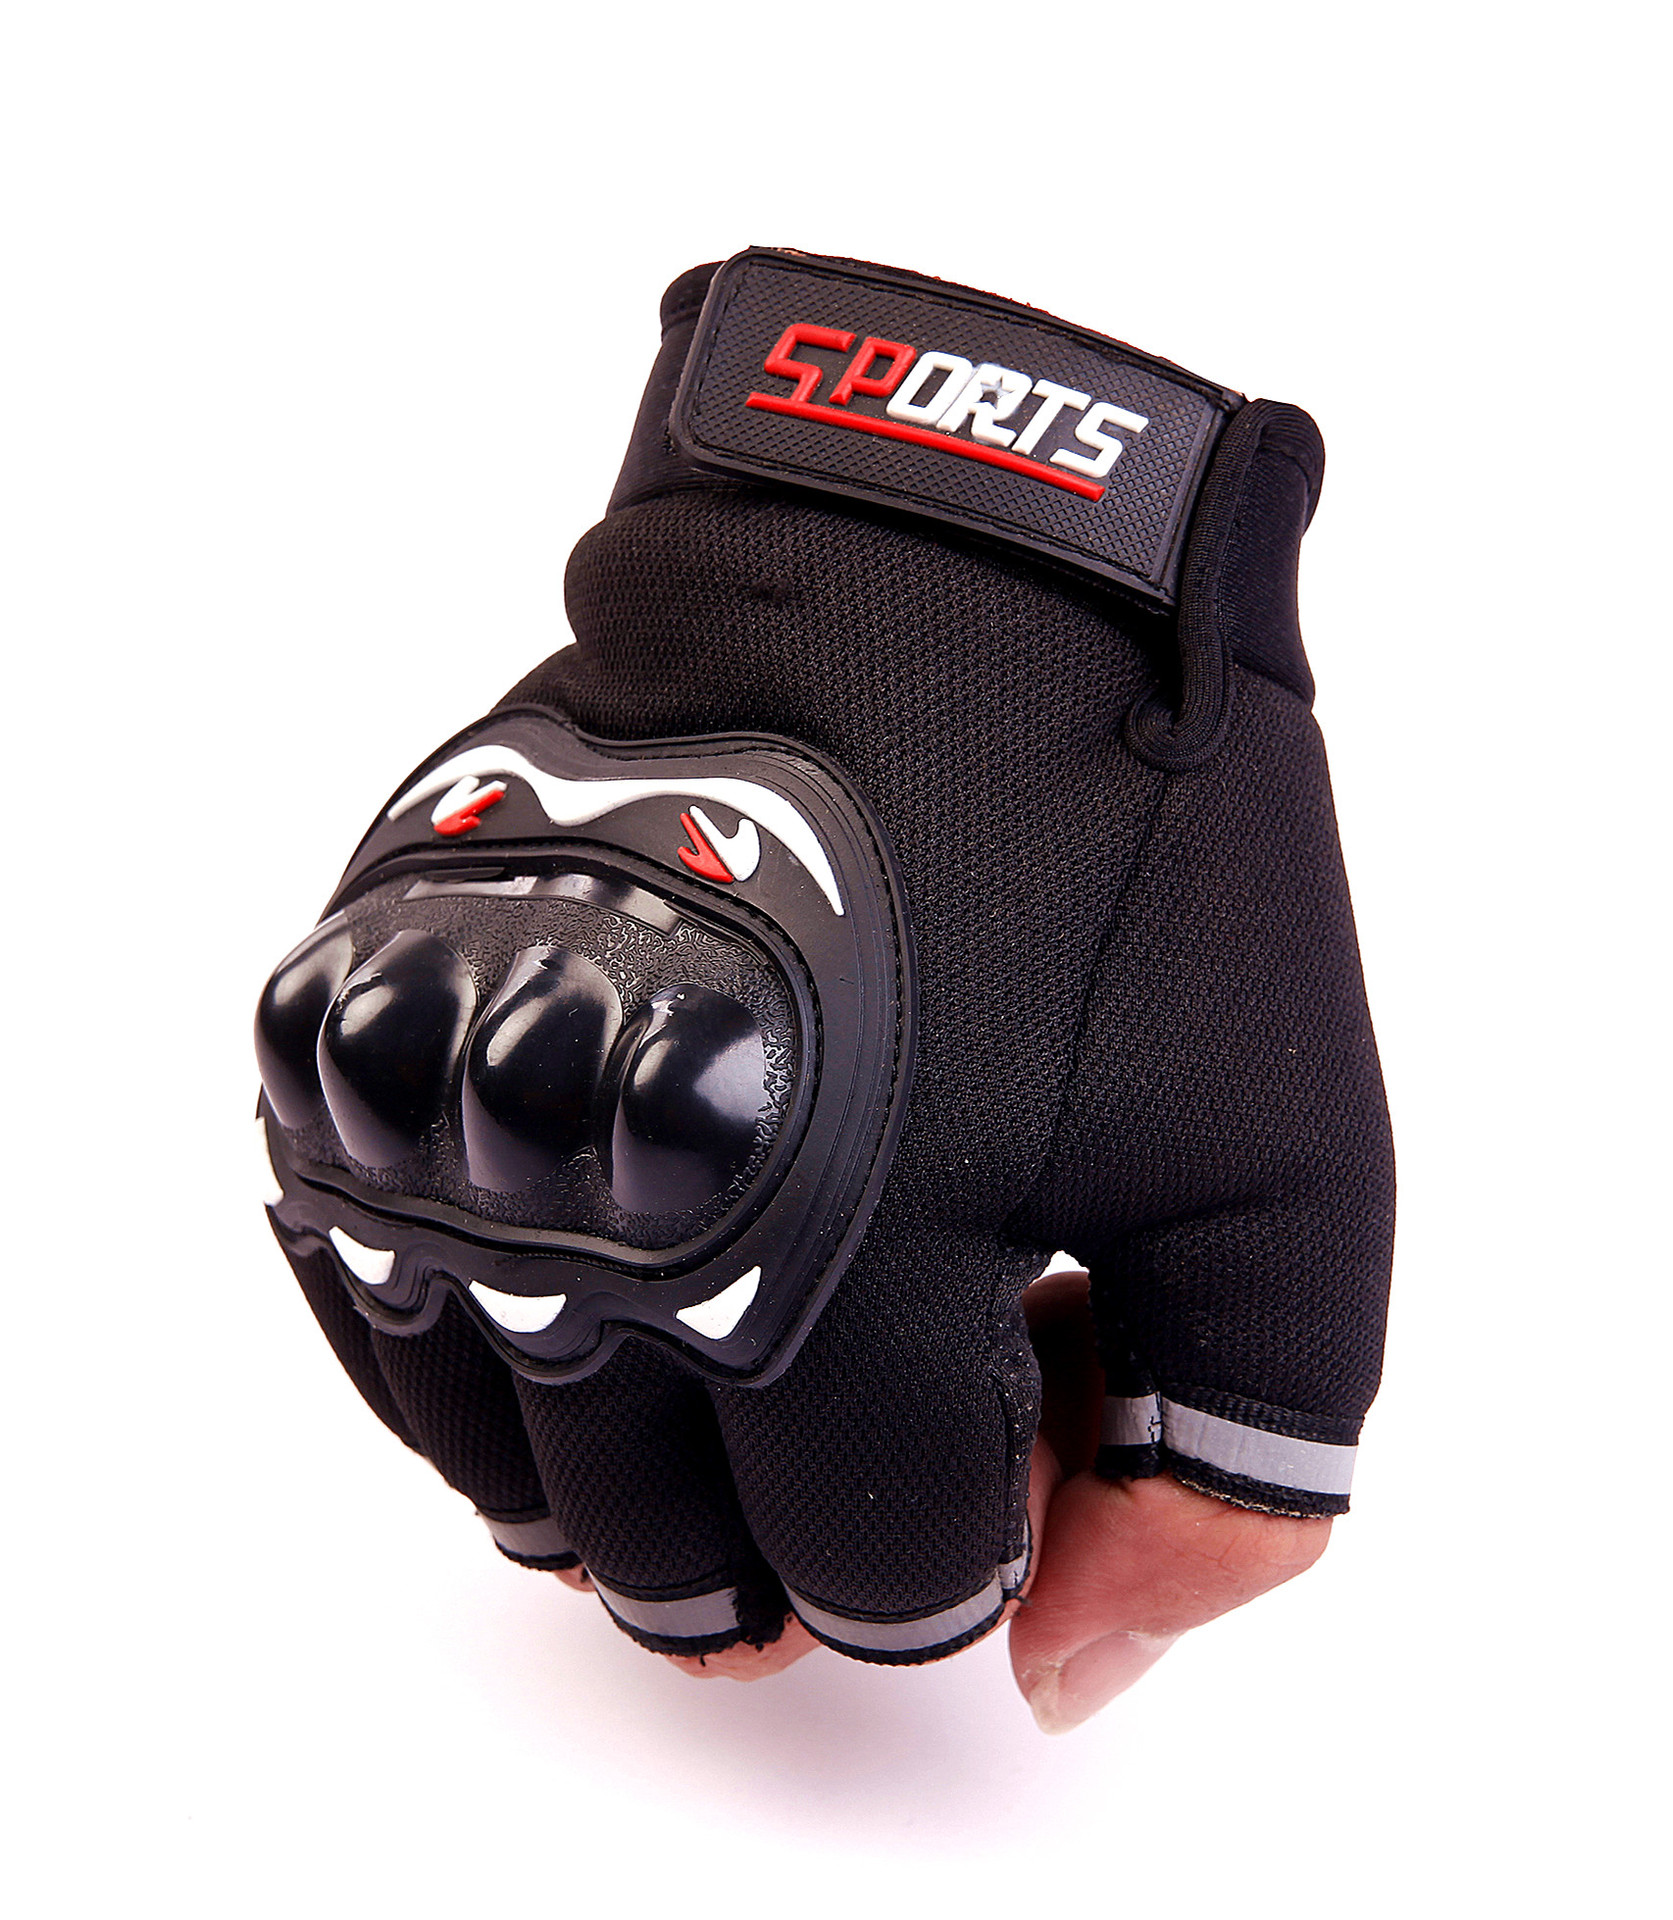 Protective anti-collision half finger gloves leather protective gloves men's leather gloves driving gloves riding gloves(China)